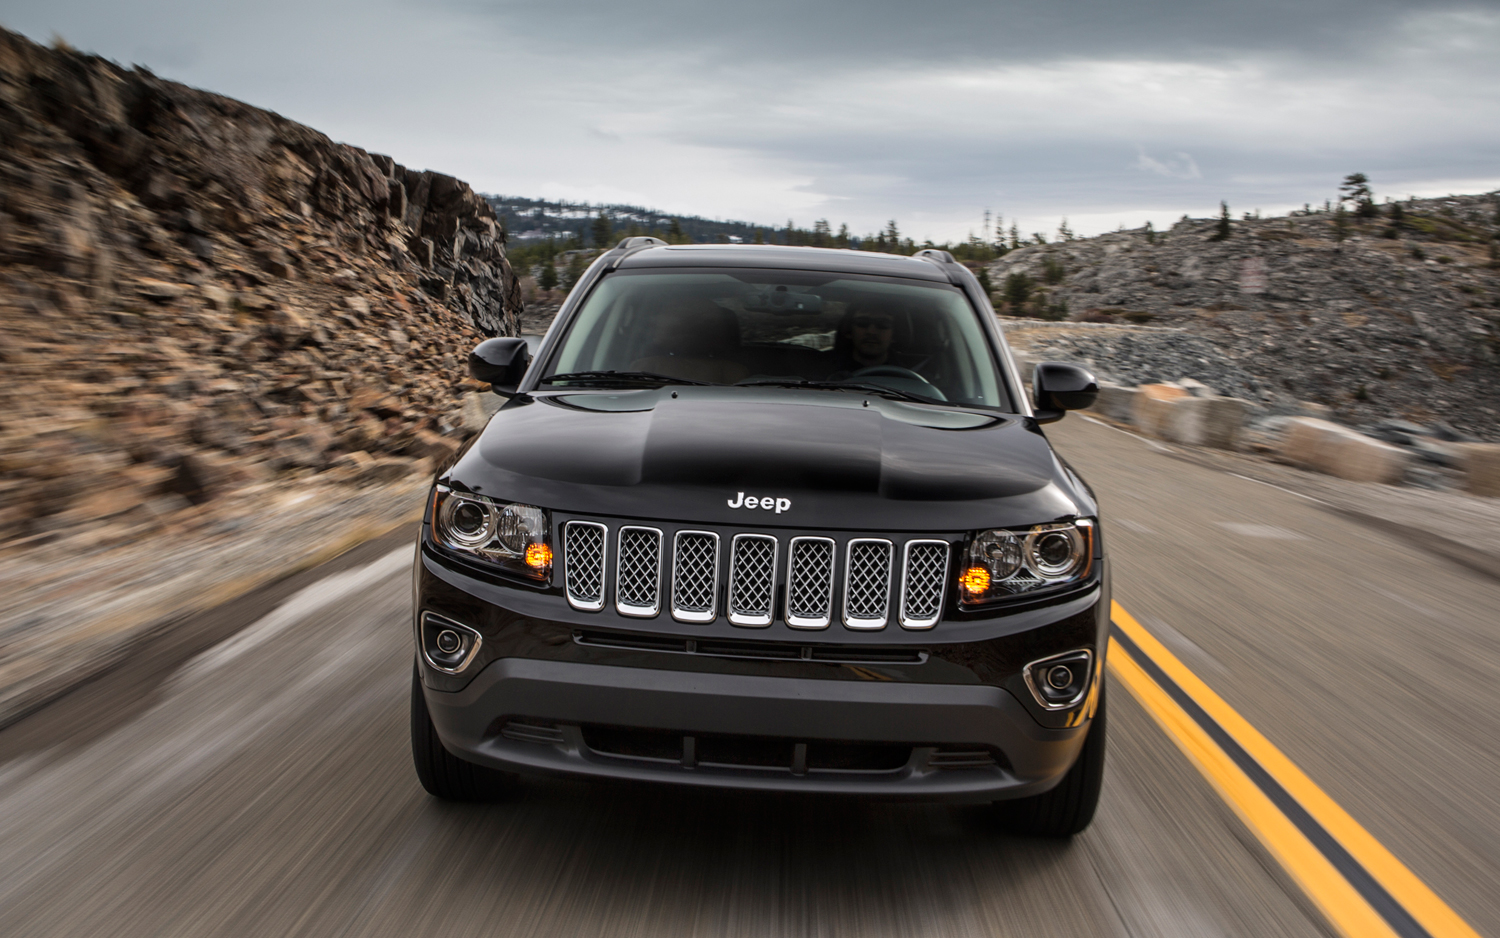 jeep 2014 Compass feeling better on rough terrain #8